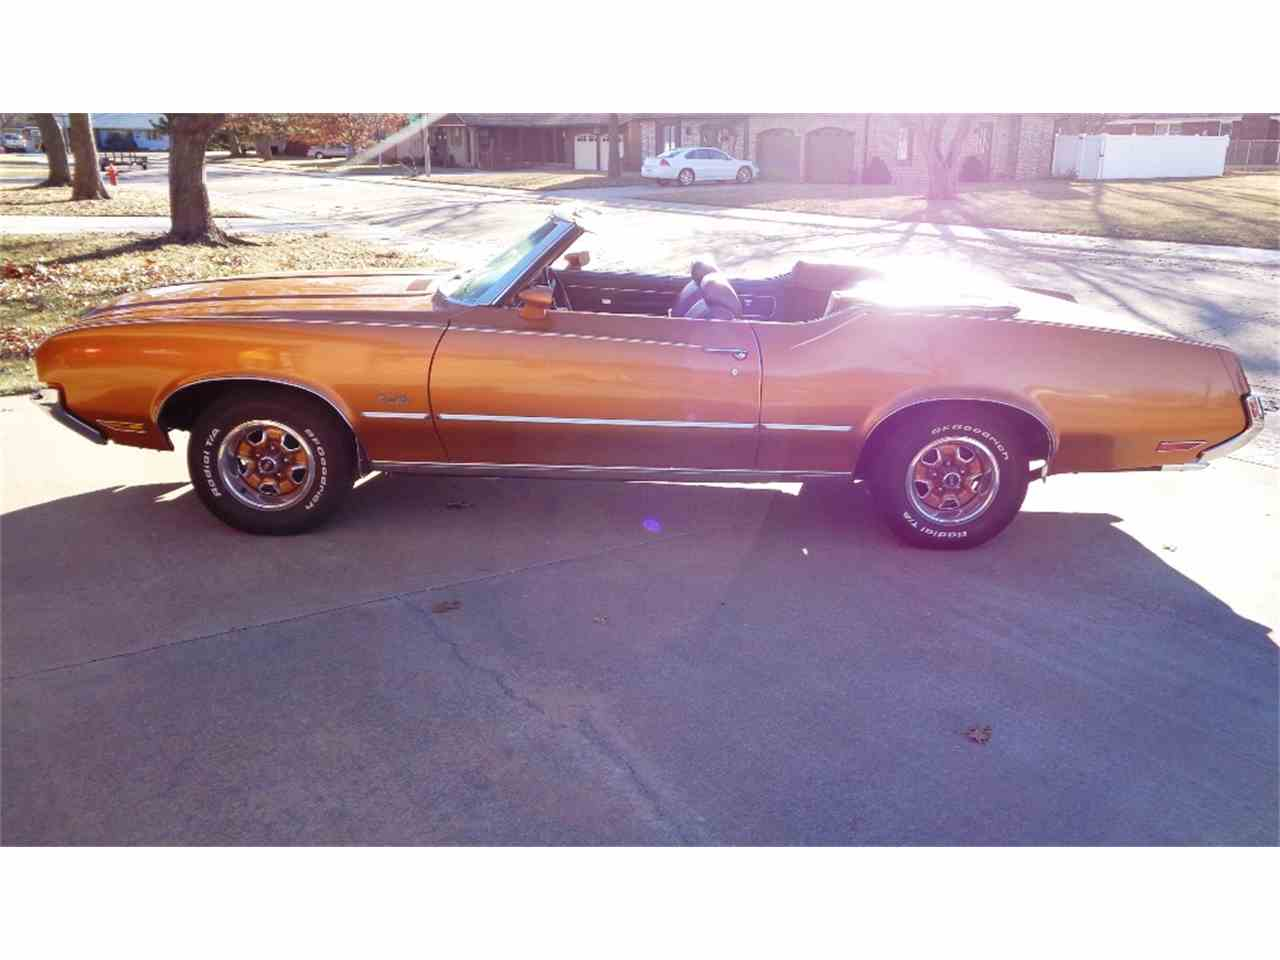 Large Picture of Classic '72 Cutlass Supreme located in Great Bend Kansas Offered by Carr Auction & Real Estate, Inc. - LSCS